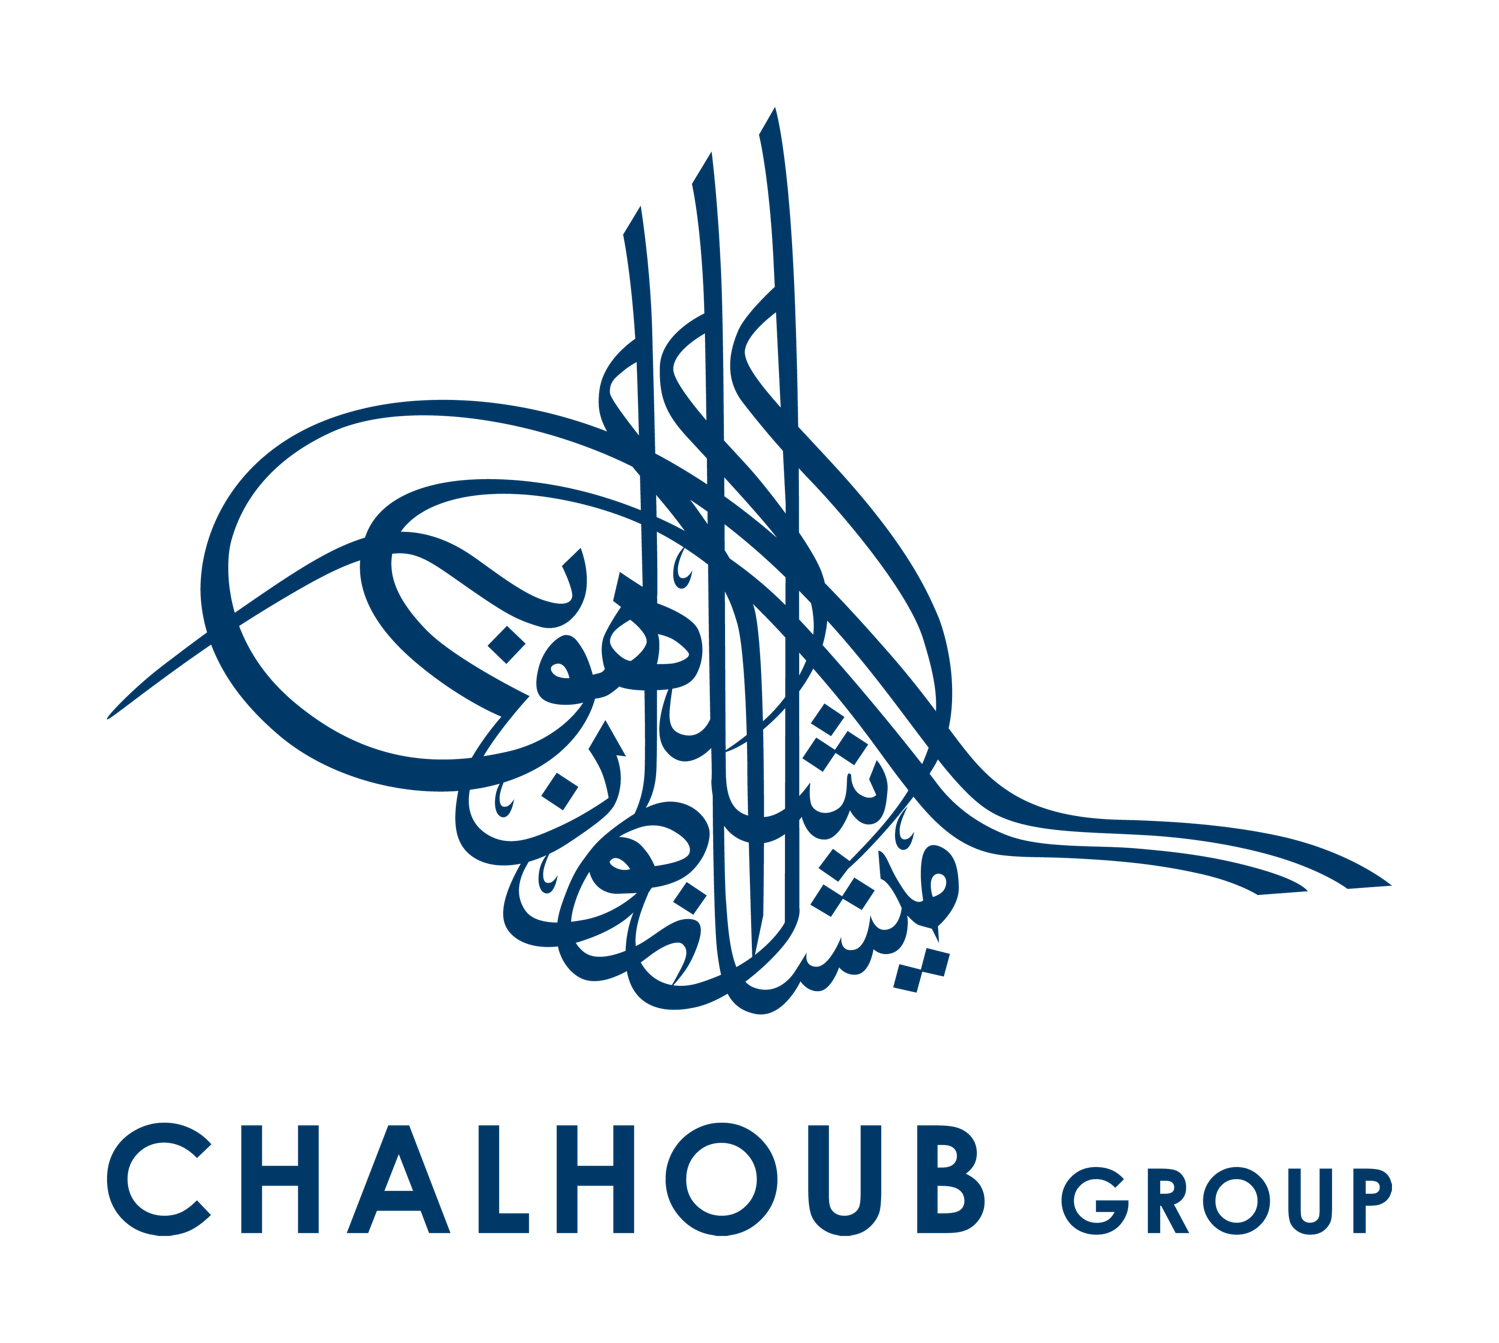 98. Chalhoub Group